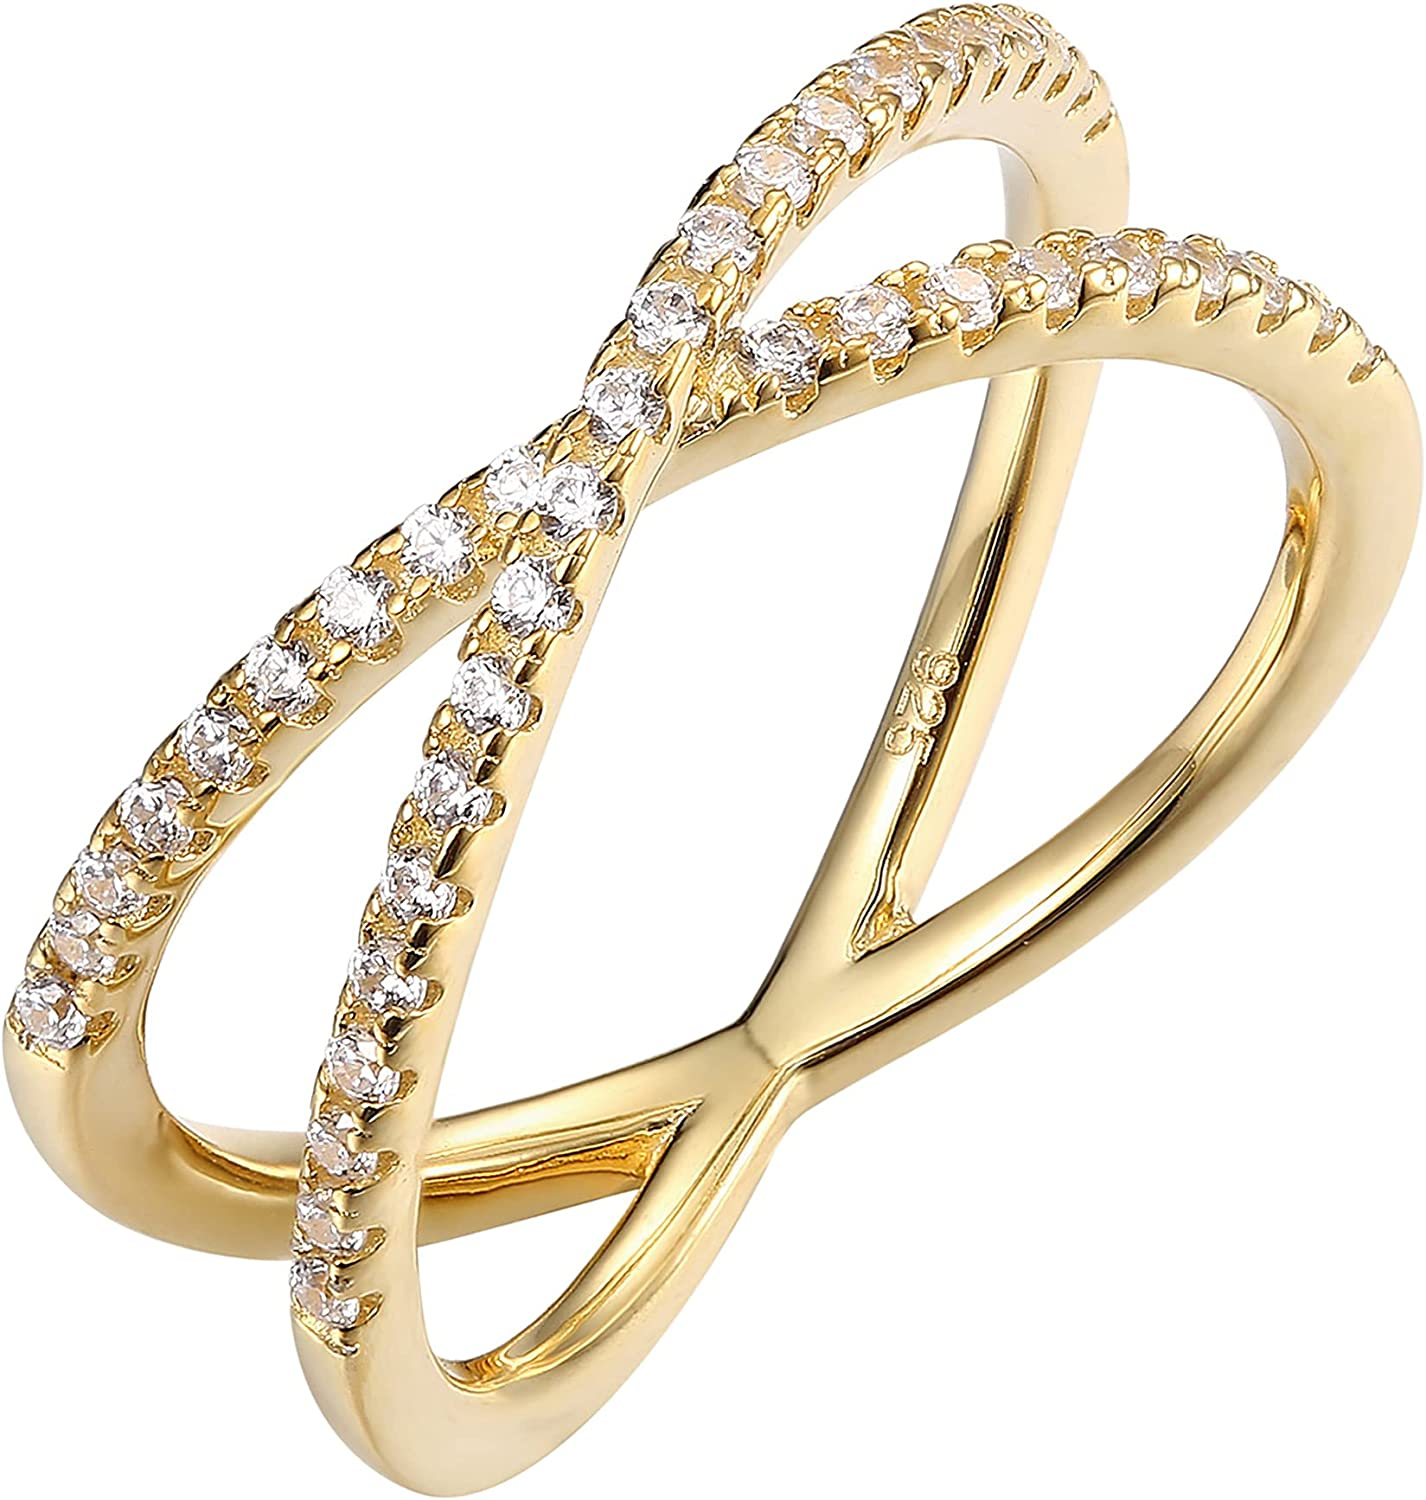 PAVOI 14K Gold Plated X Ring Simulated Diamond CZ Criss Cross Ring for Women